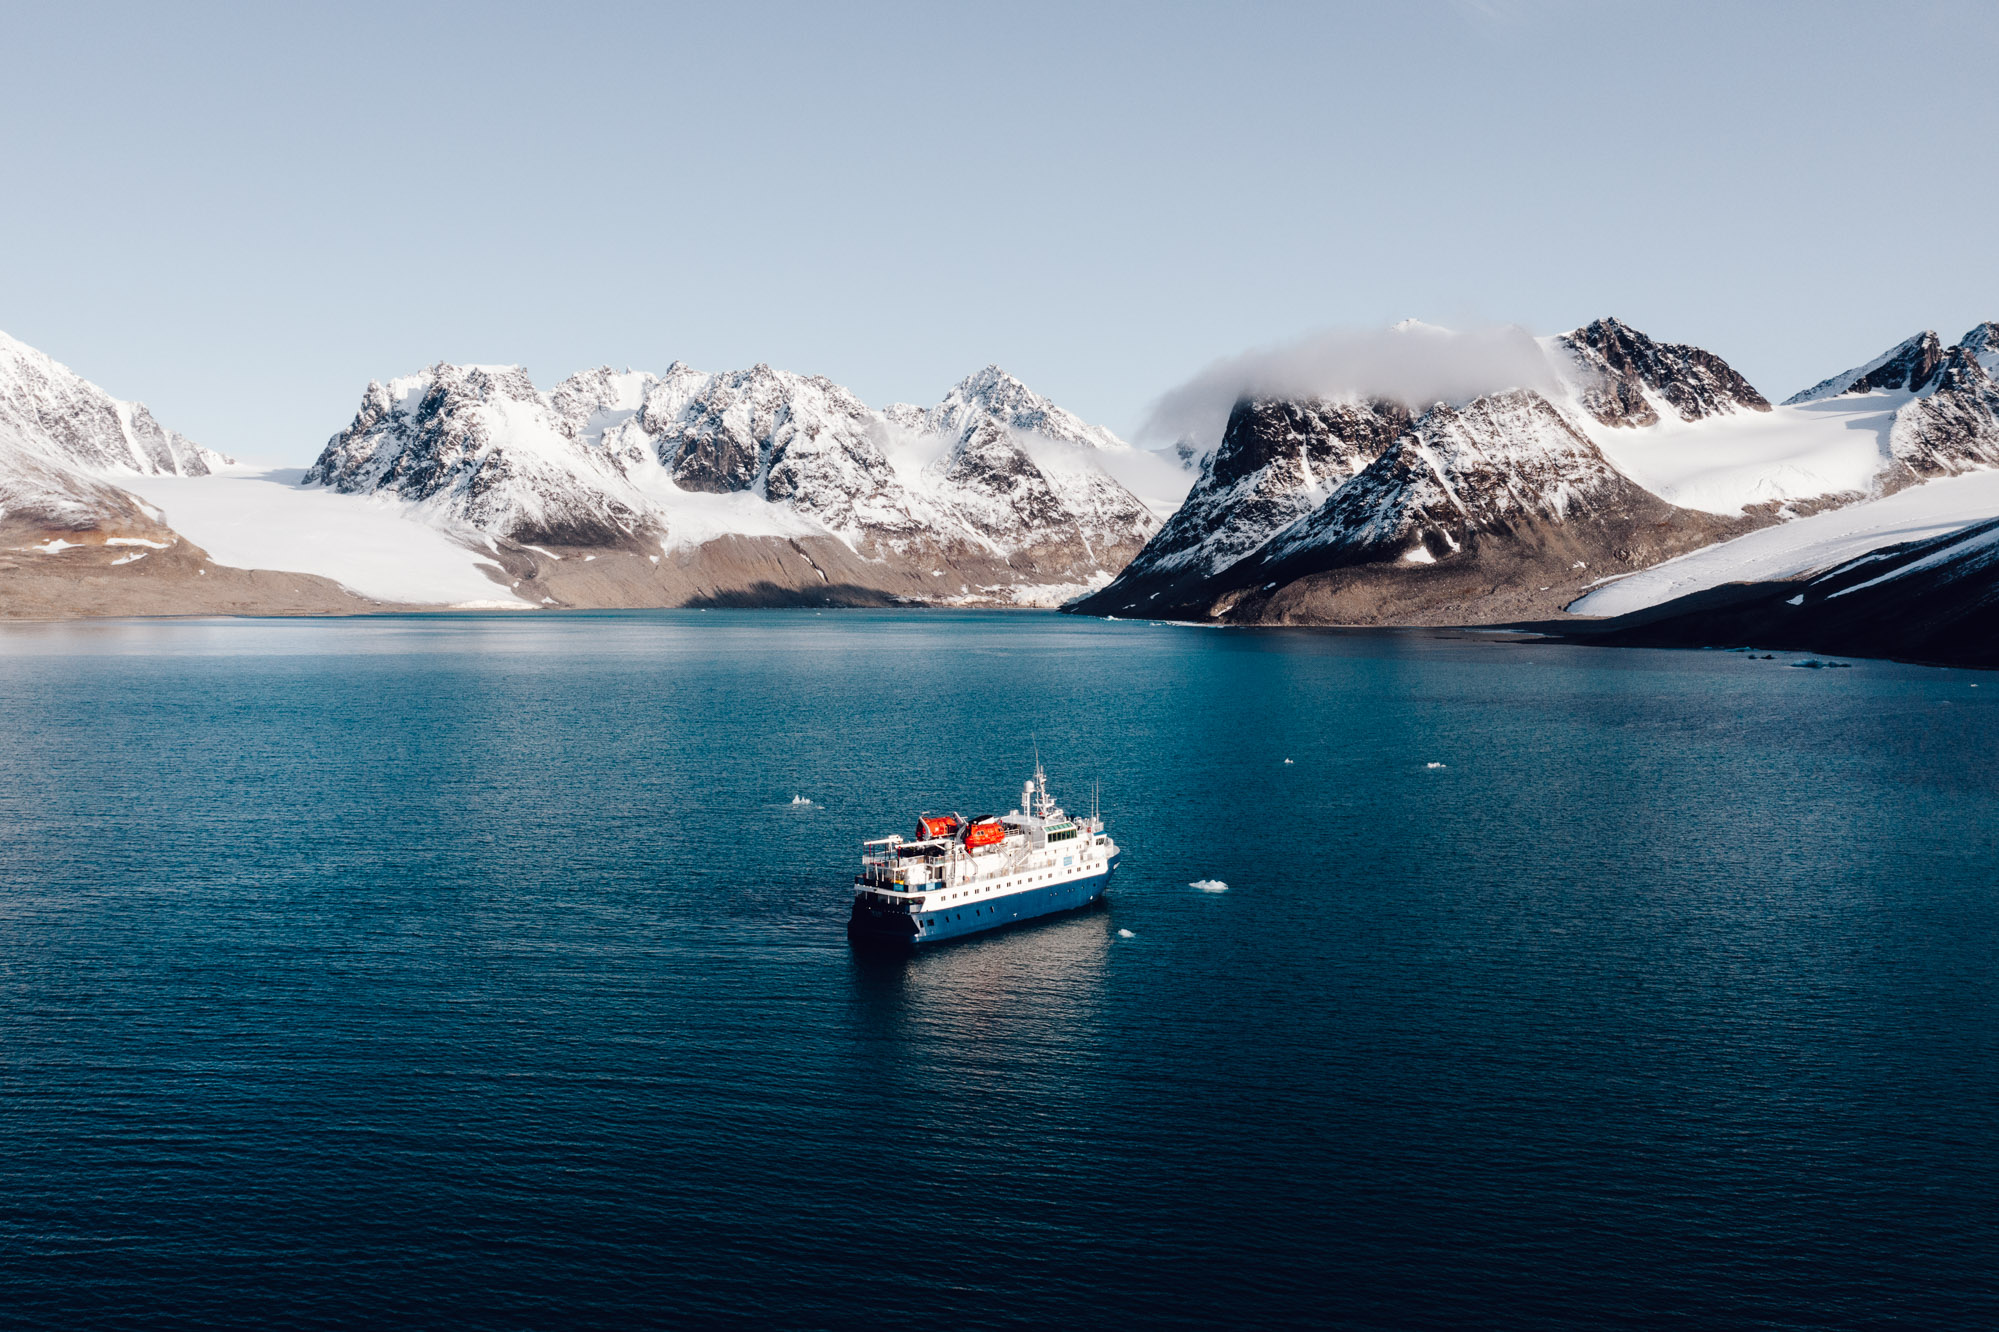 Magdalenefjorden with polarquest ship drone aerial photo in Spitsbergen Svalbard via Find Us Lost